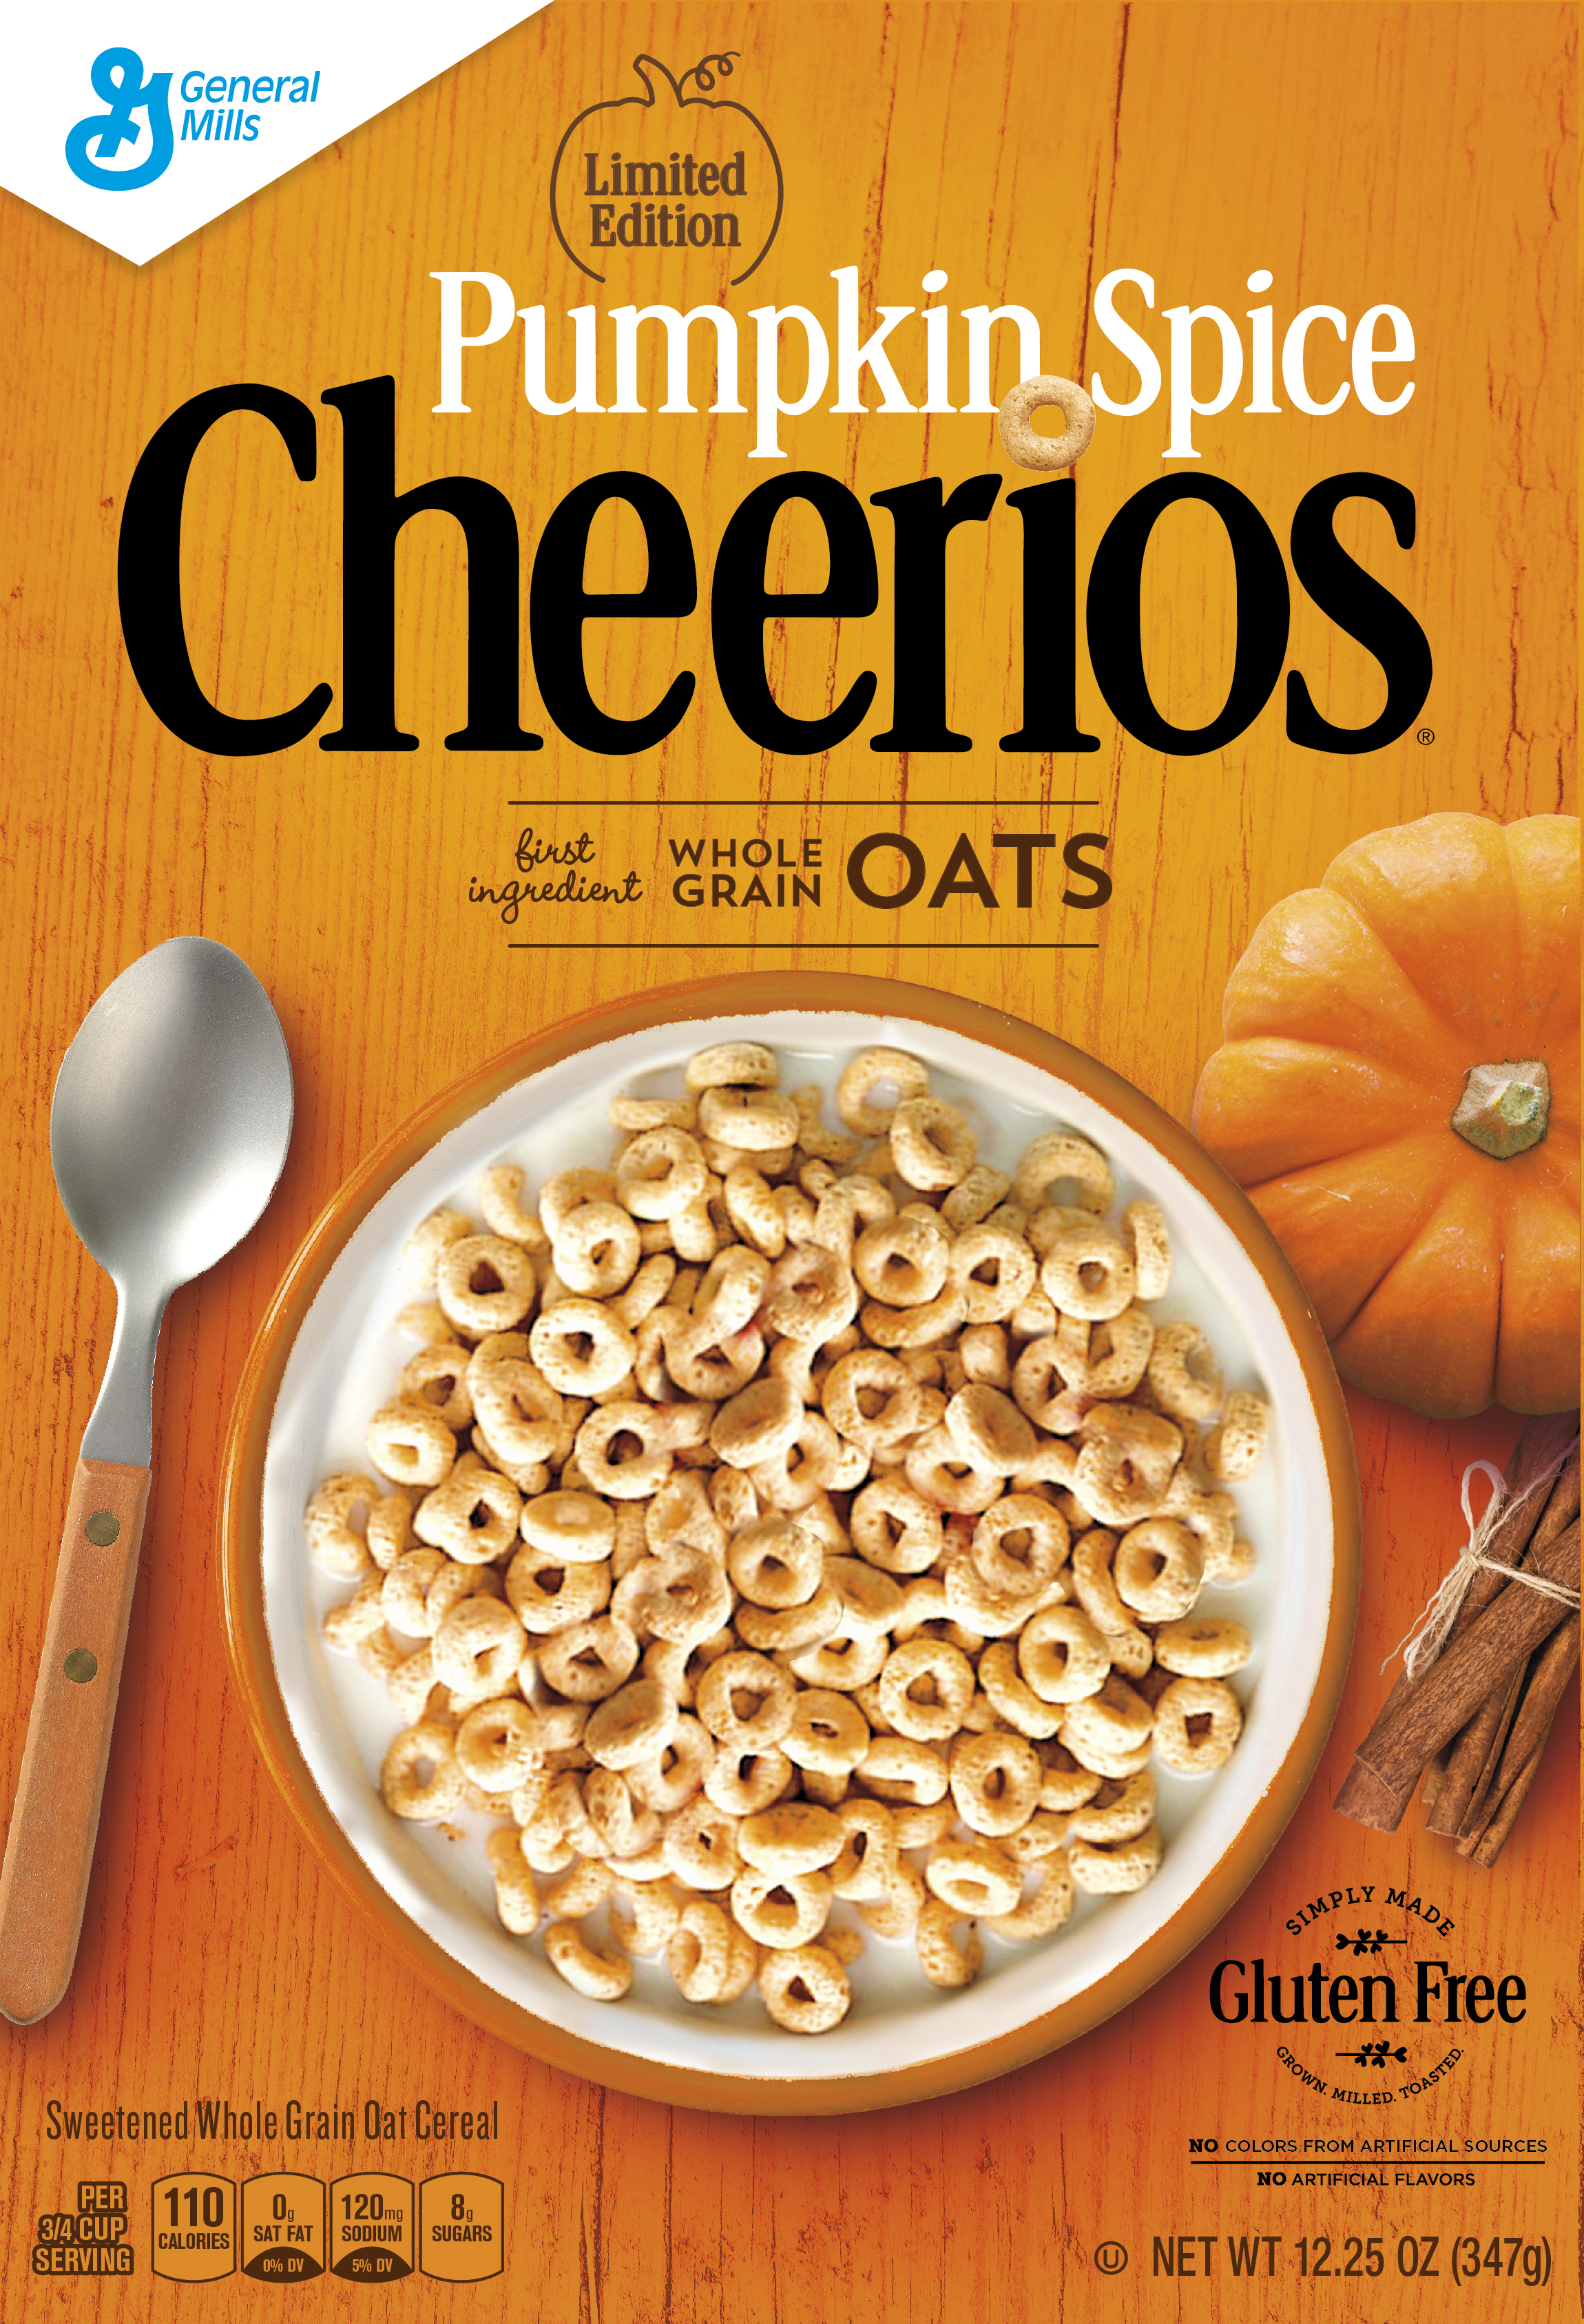 A box of Pumpkin Spice Cheerios, which will hit shelves this month. (Photo: General Mills)